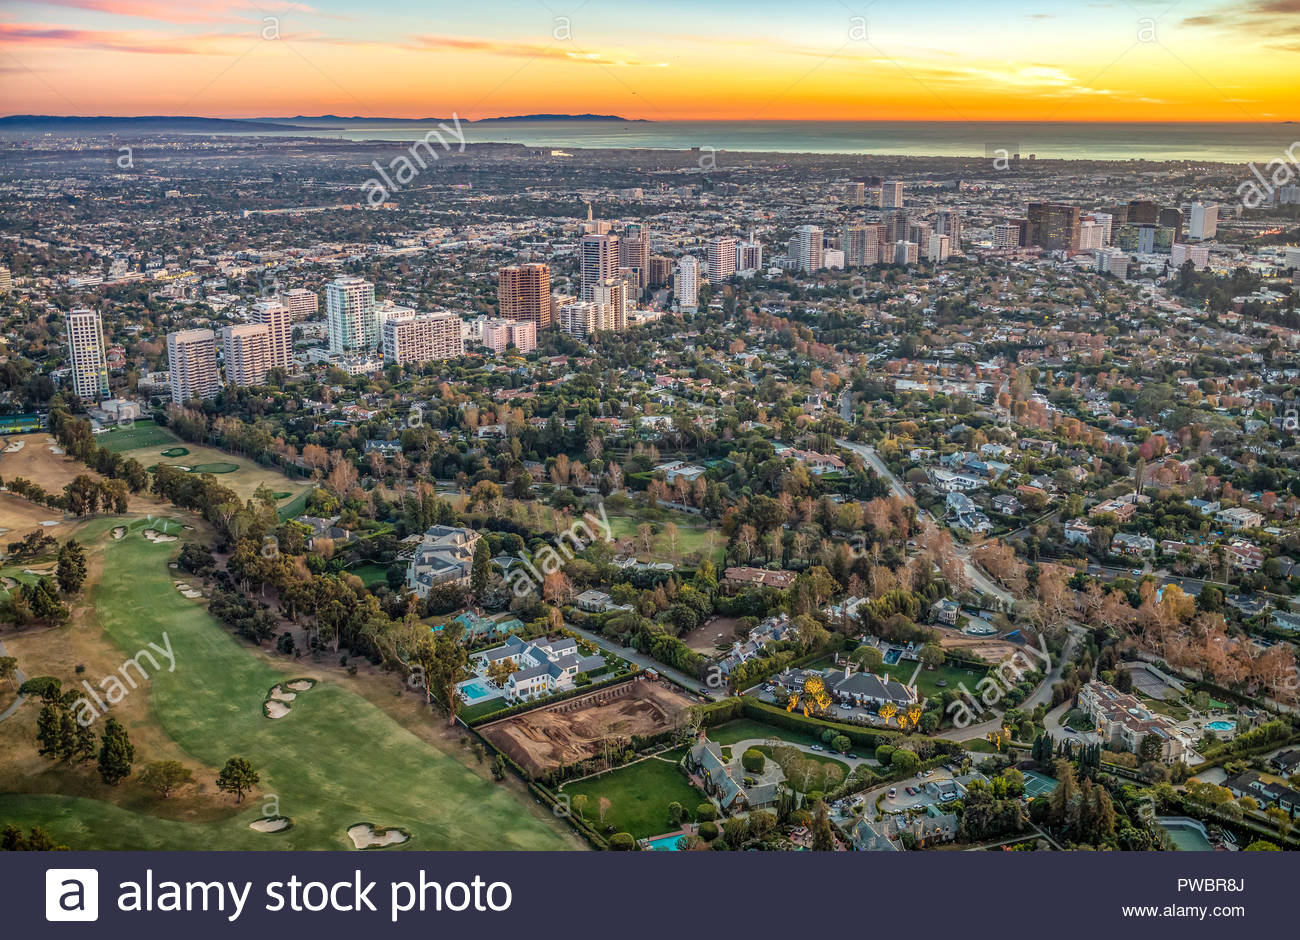 Aerial view of the city of Los Angeles featuring Wilshire Blvd. - Stock Image